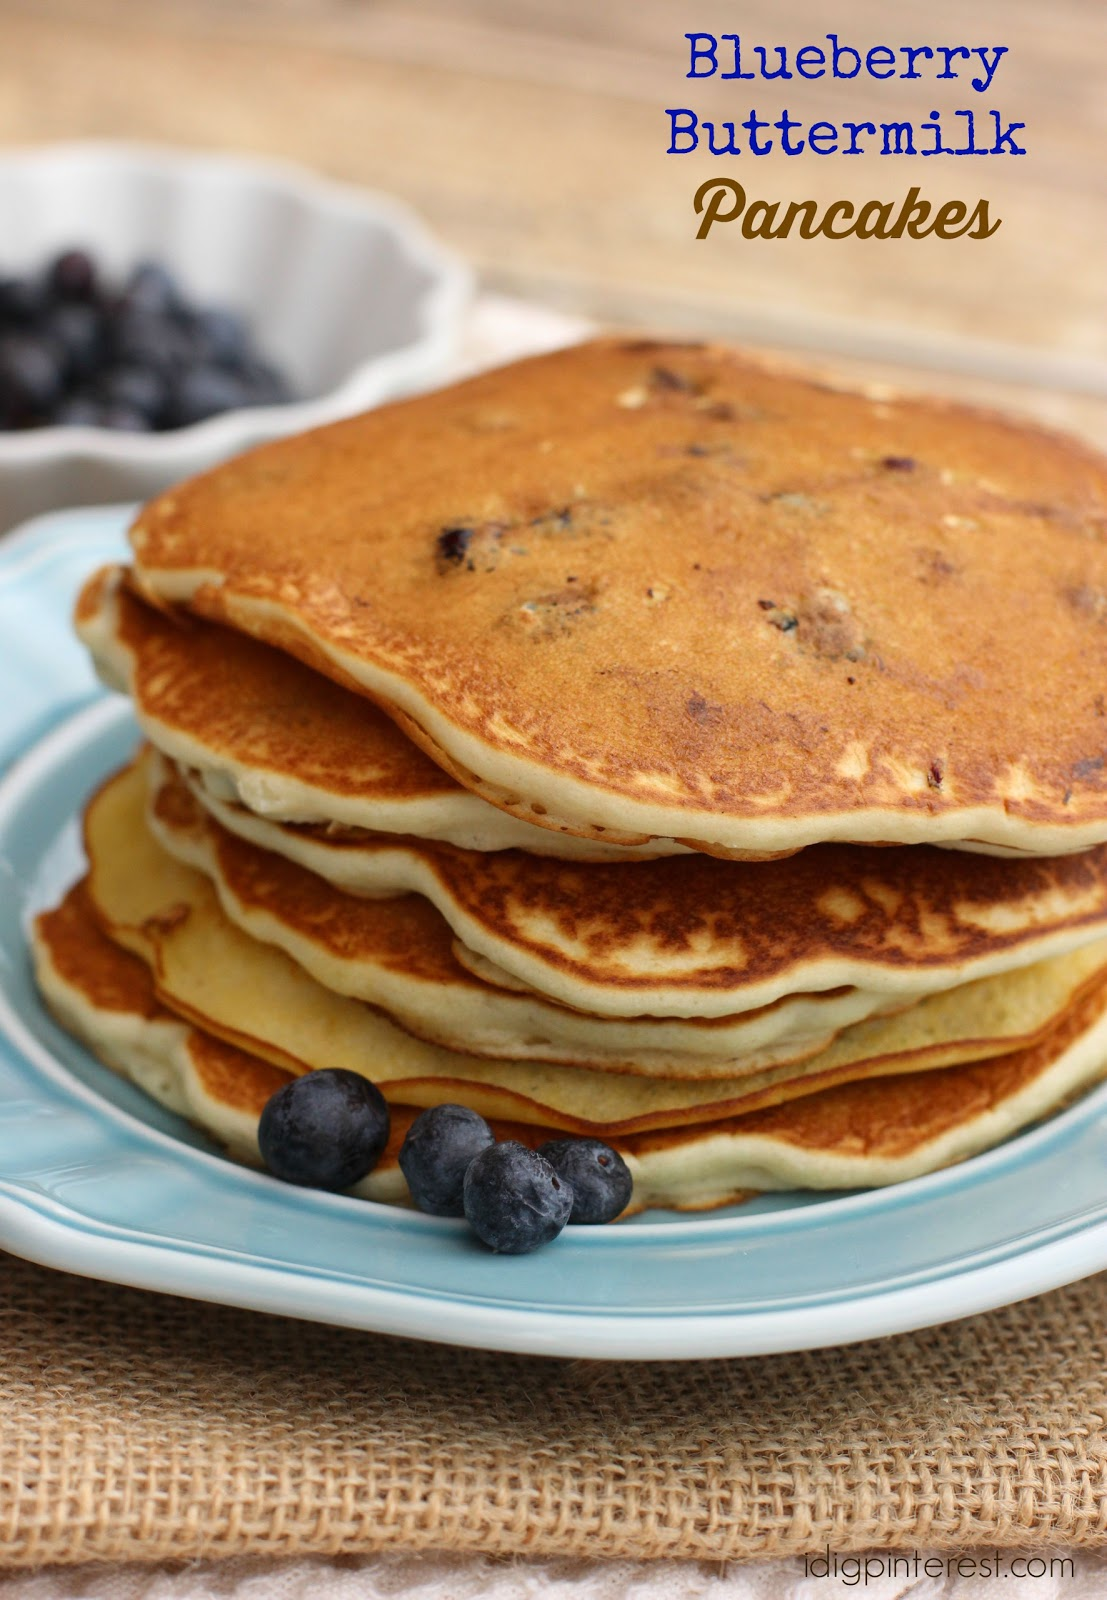 Blueberry Buttermilk Pancakes - I Dig Pinterest